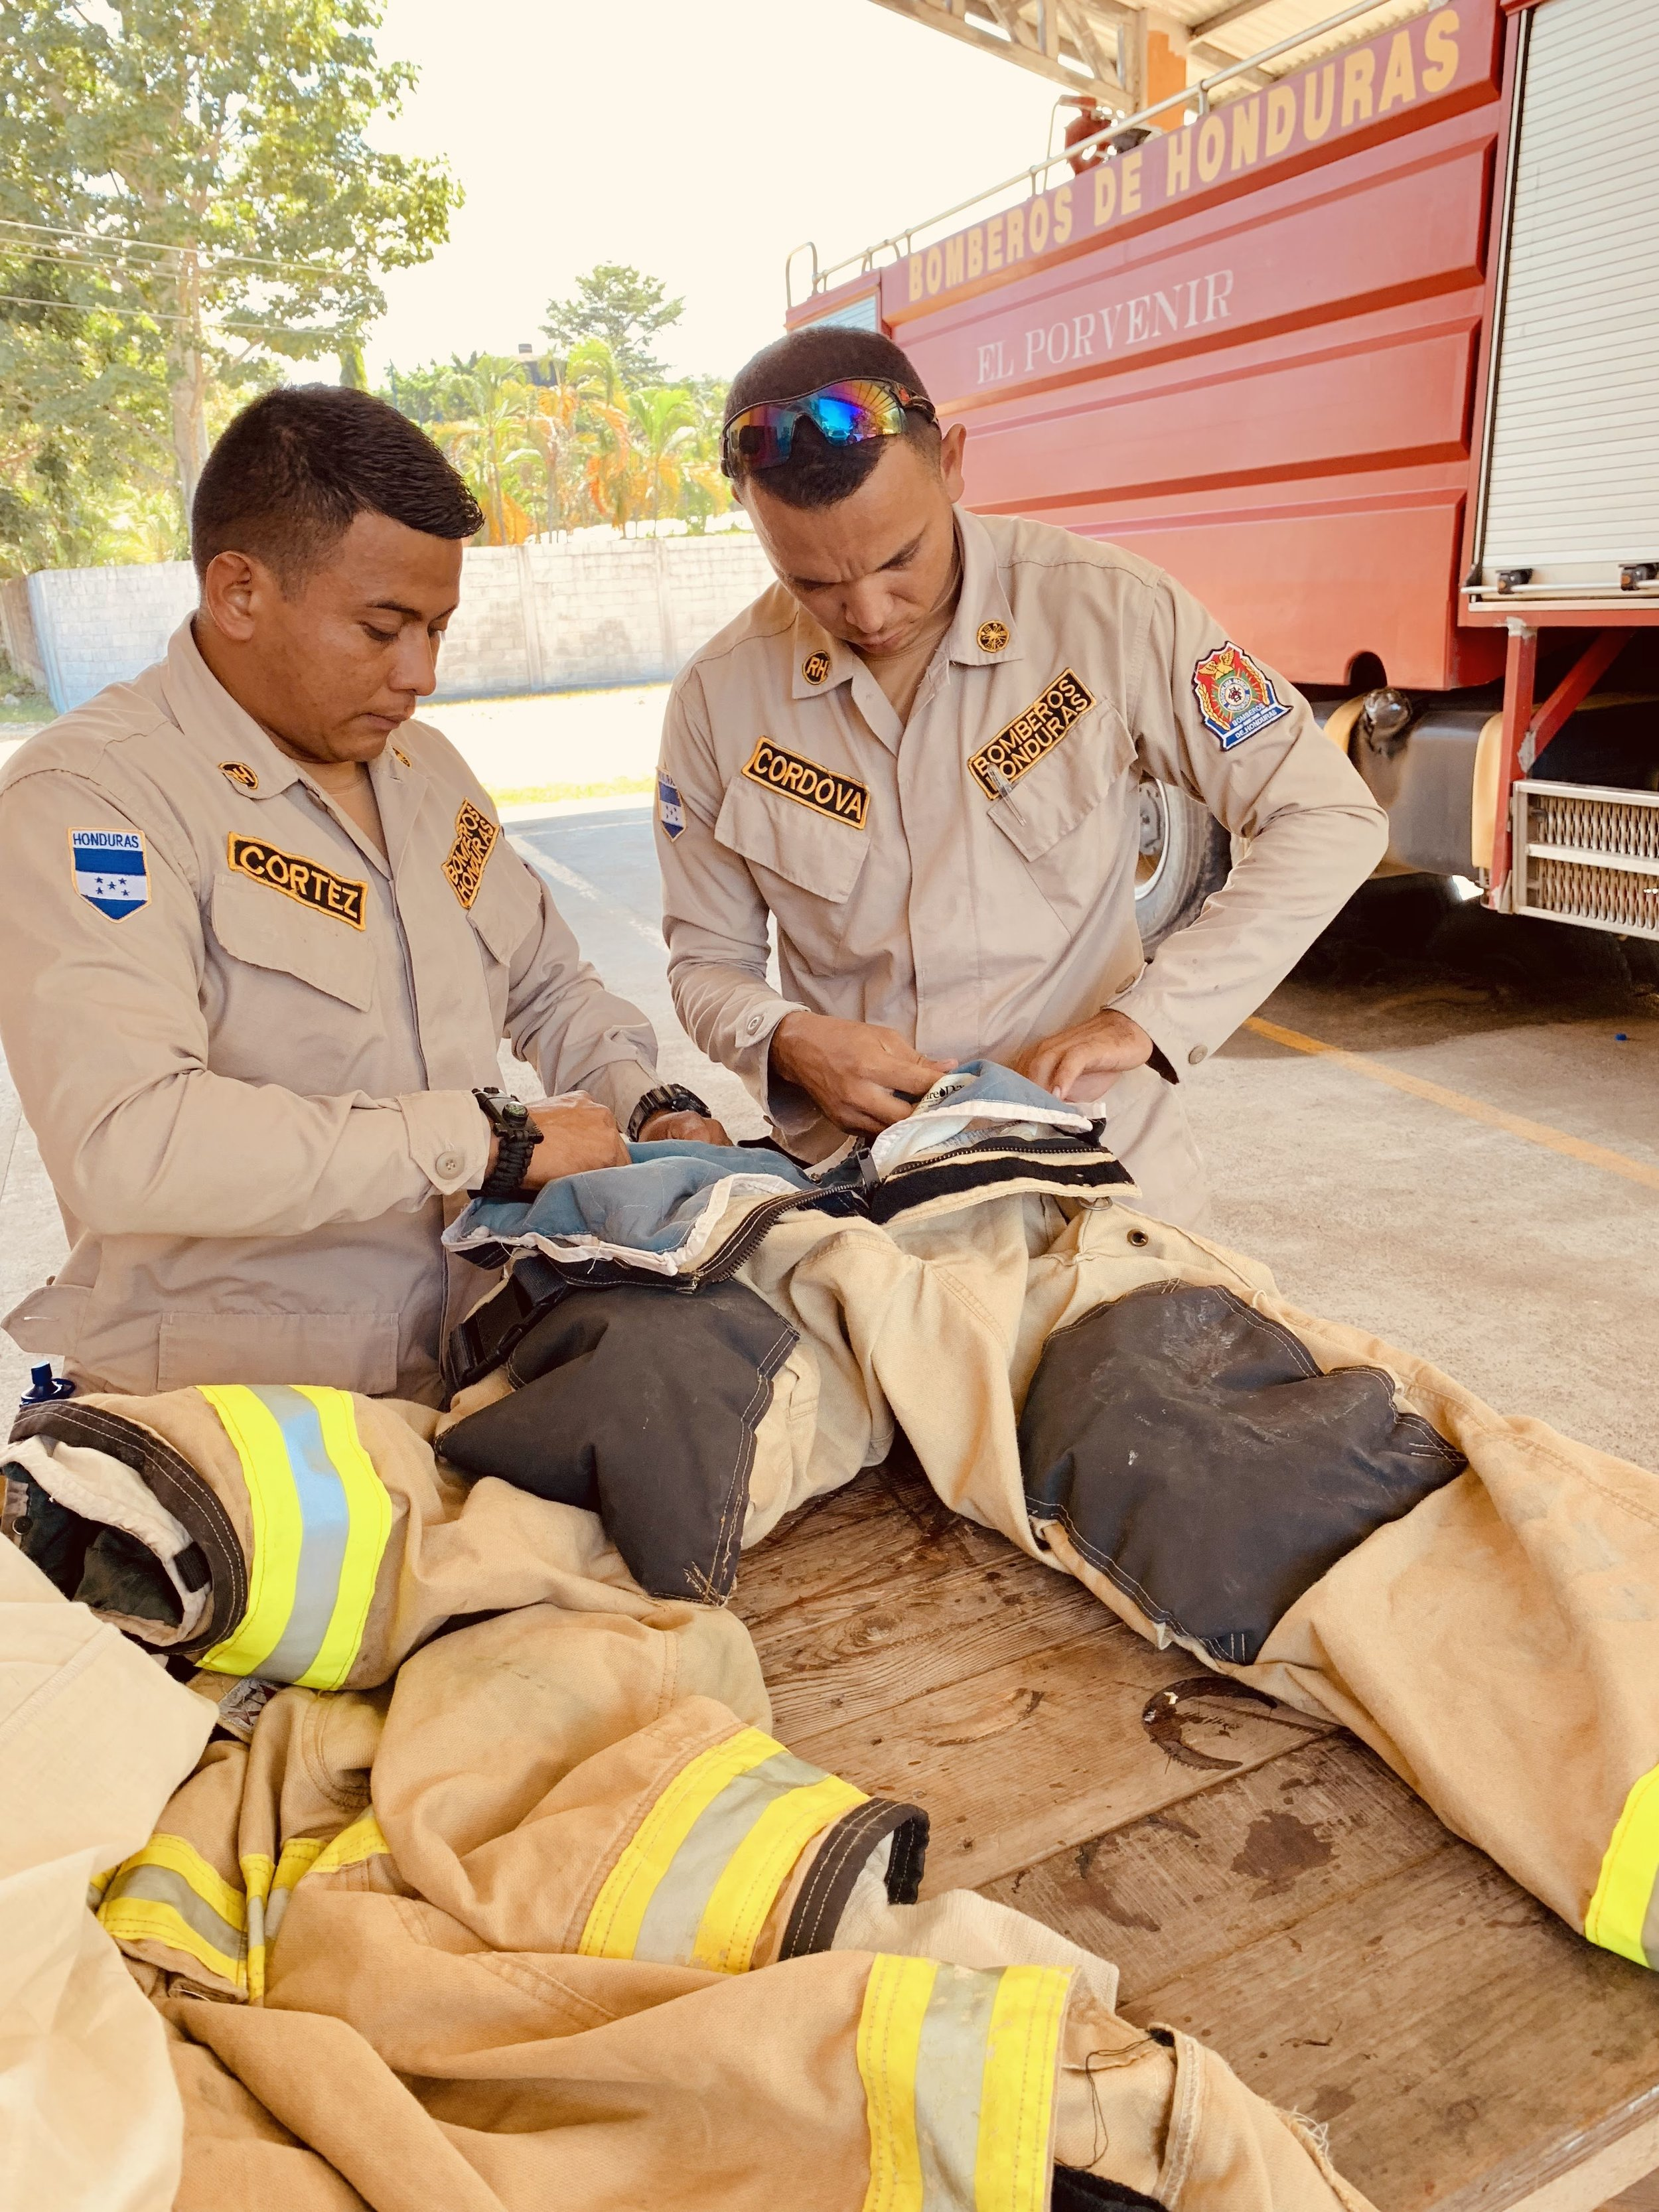 Connect Global was able to facilitate the delivery of several donated fire suits from the Southern Manatee Fire Rescue unit in Florida to the Firefighters of El Porvenir.